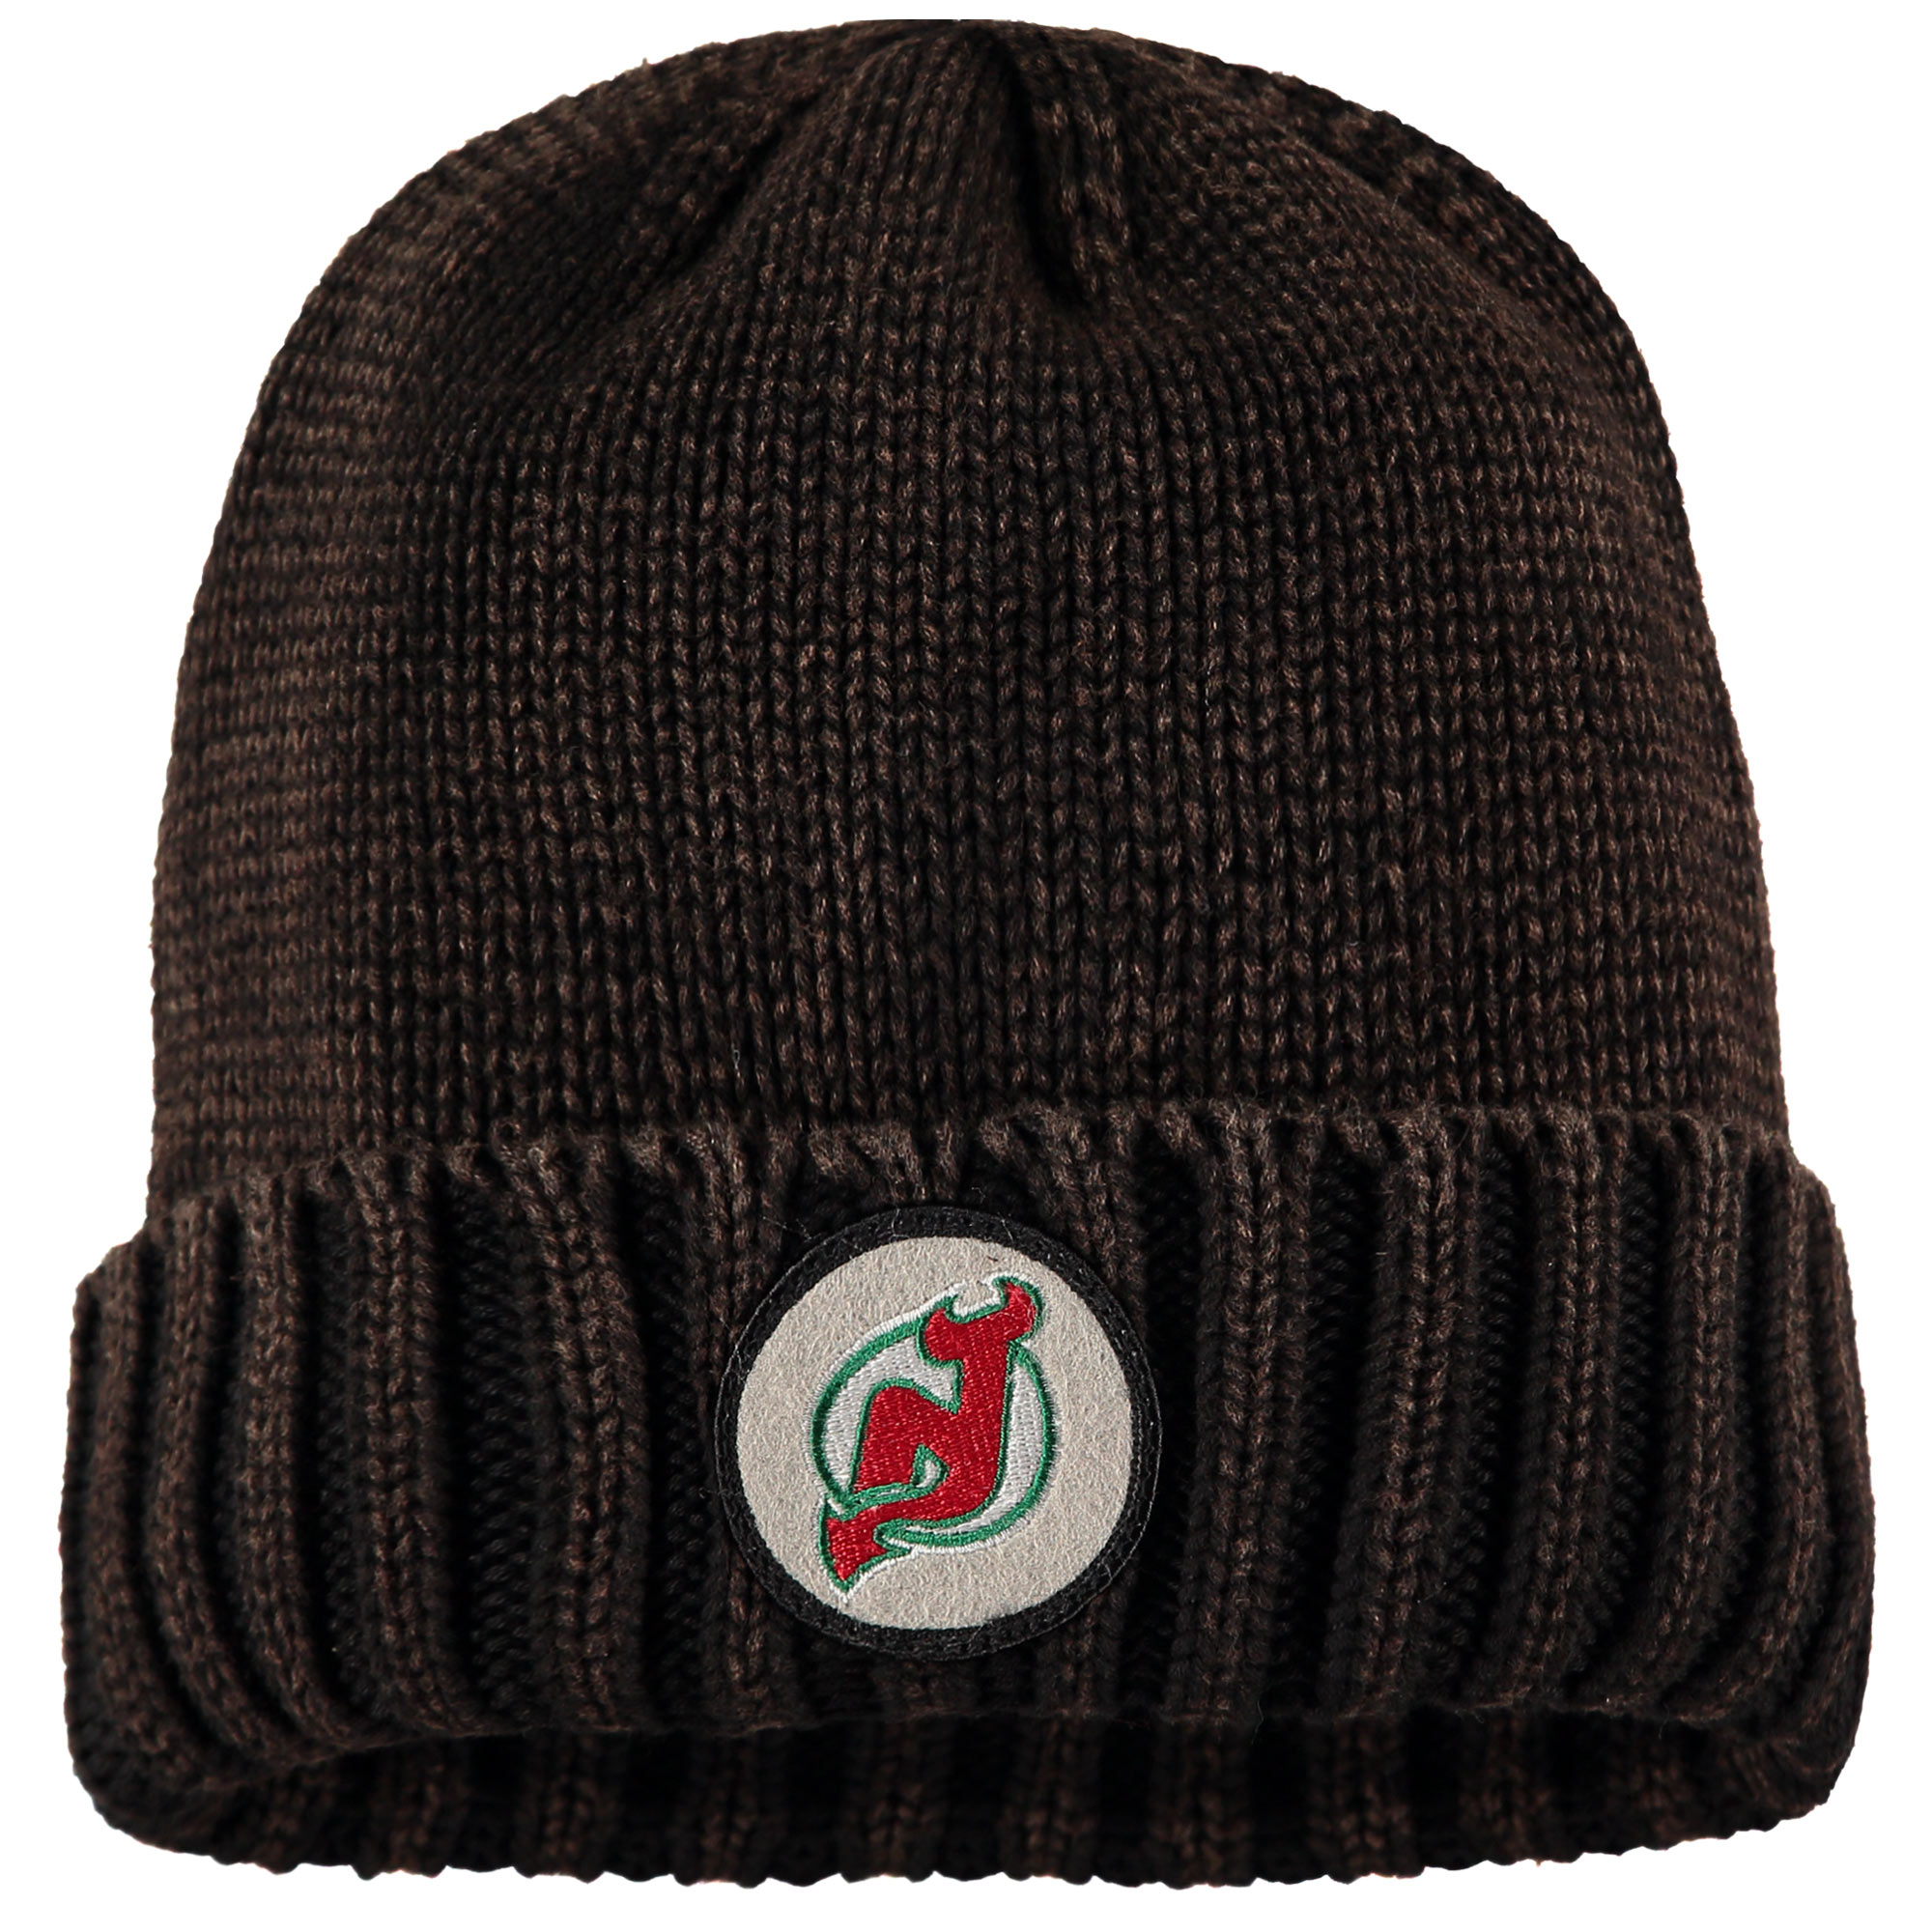 New Jersey Devils Mitchell & Ness Vintage Ribbed Cuffed Knit Hat - Brown - OSFA